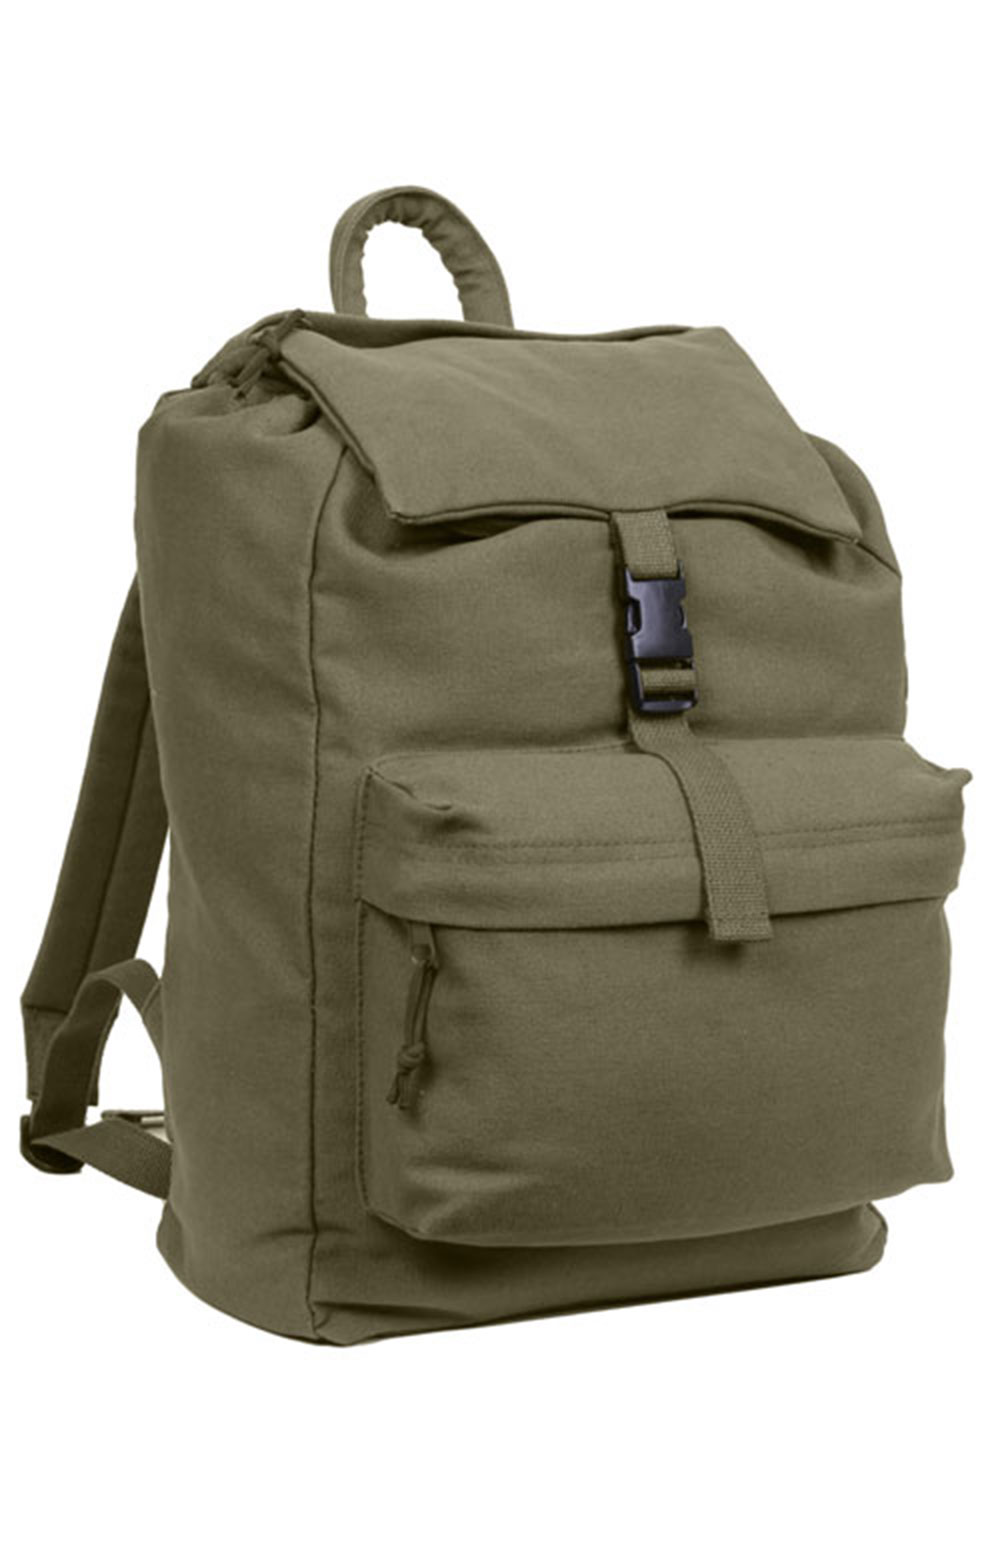 (2169) Canvas Daypack - Olive Drab